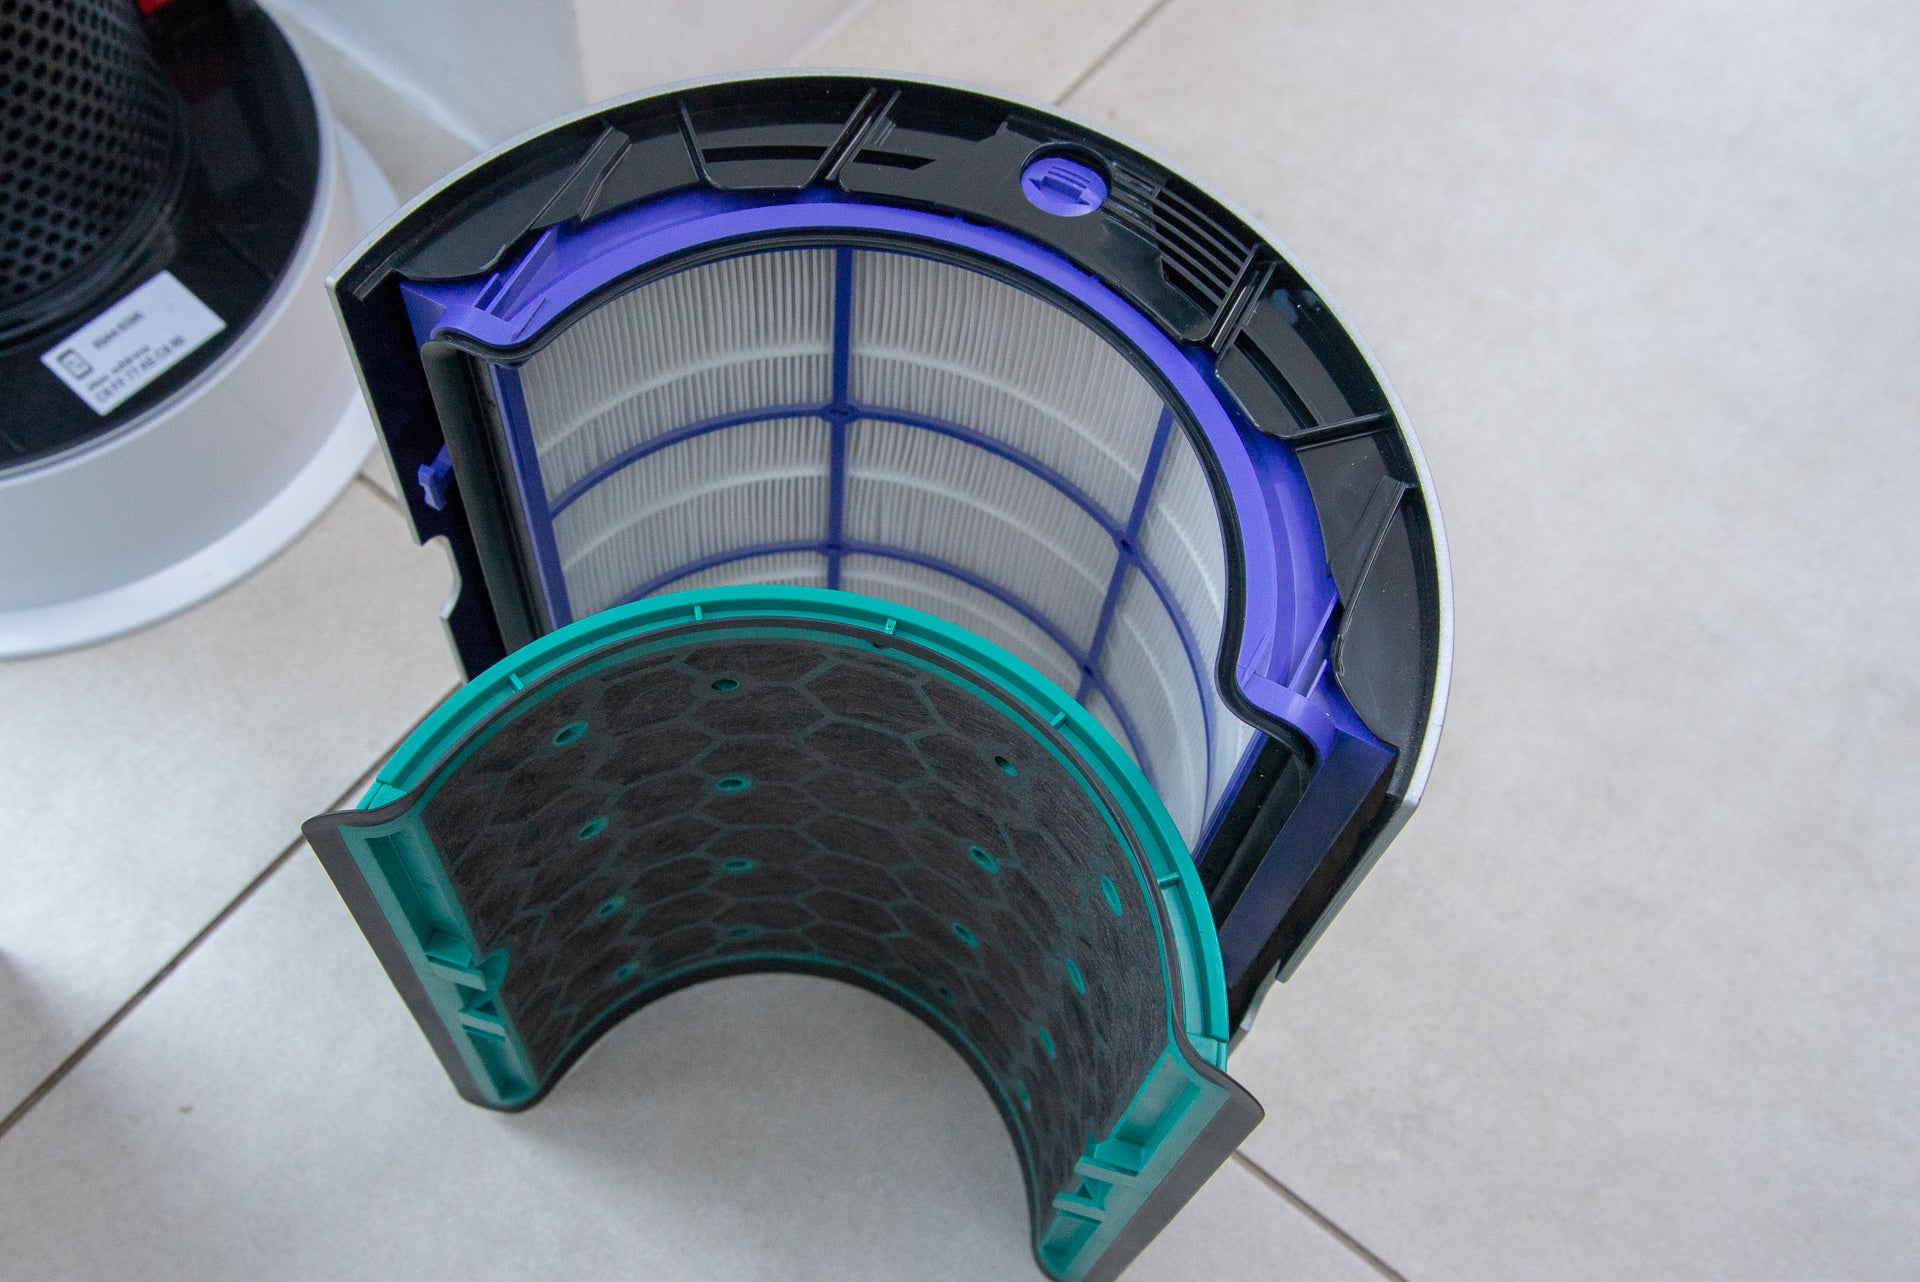 Dyson Pure Hot+Cool filters